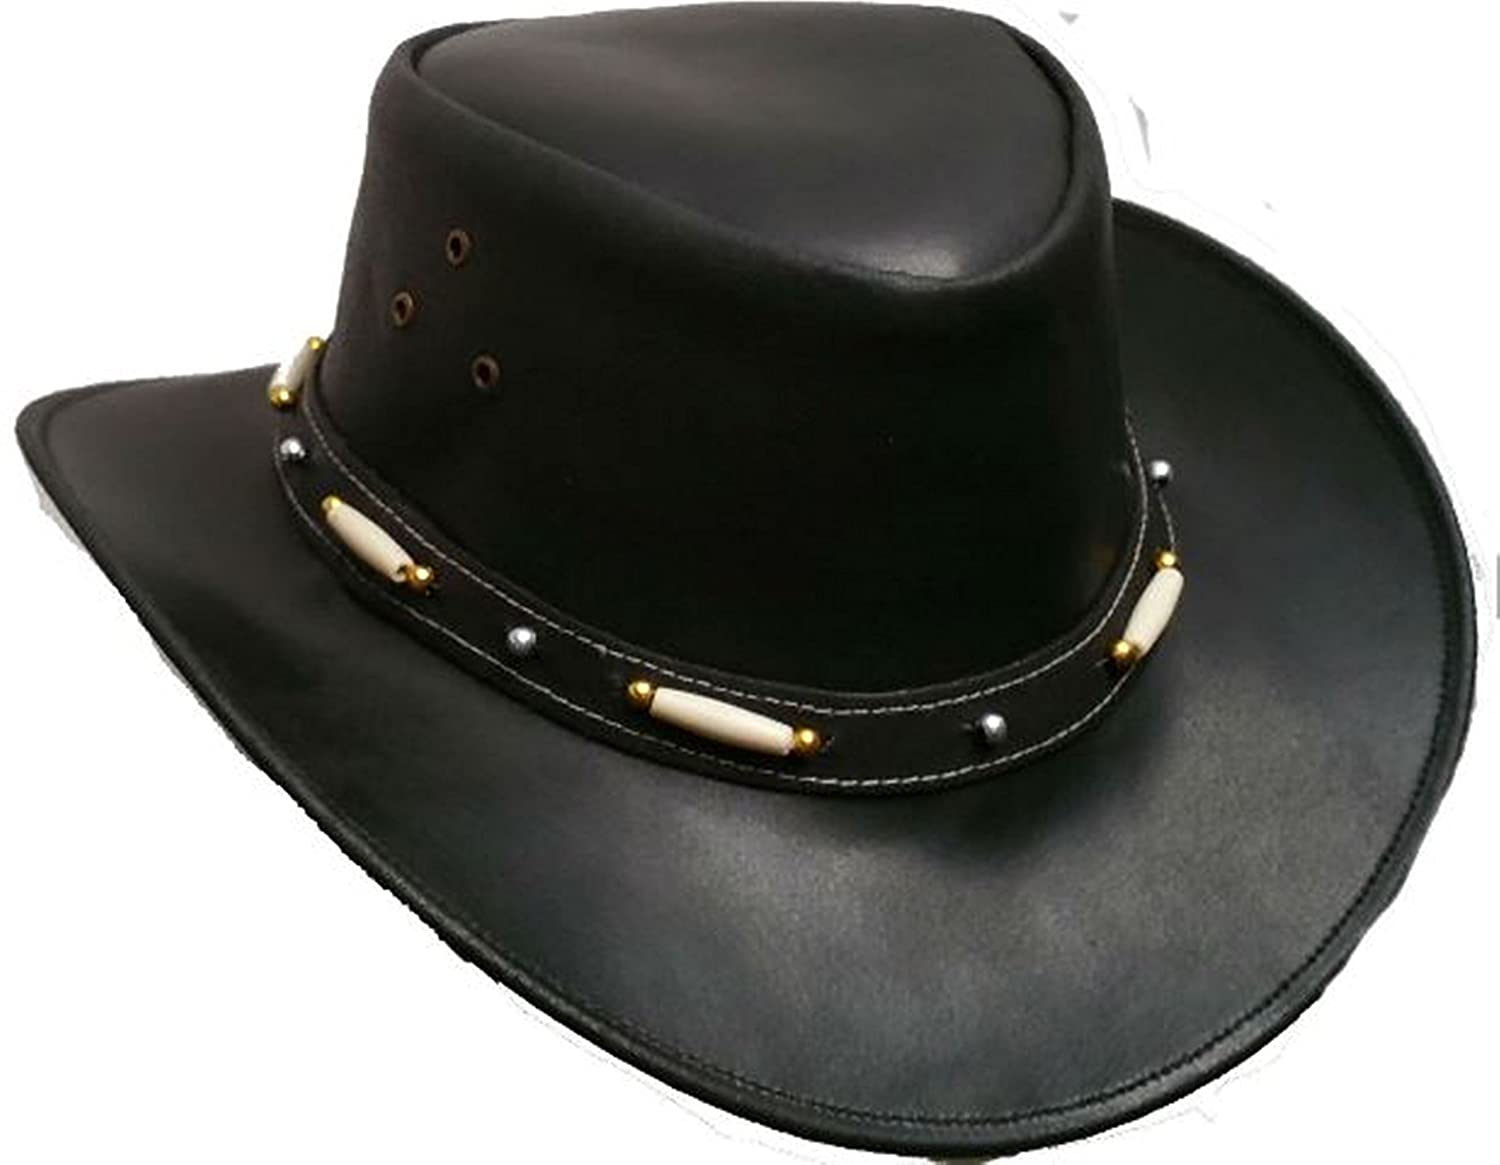 Australian Style Leather Western Hat Cowboy Hat With Bone, Brown, Medium